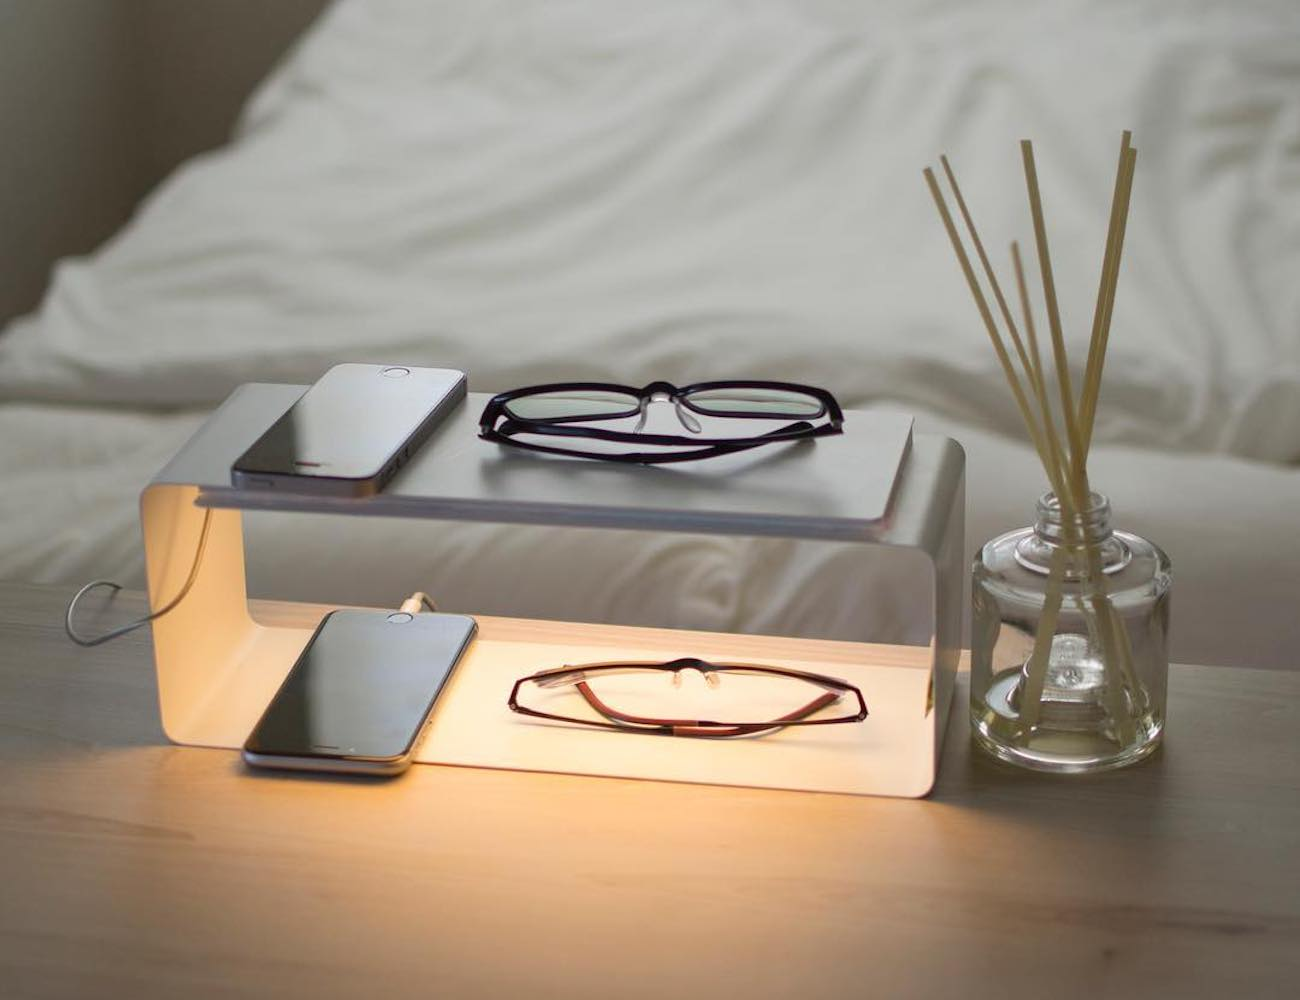 Y.S.M Minimal Lighting Shelf shines over your belongings